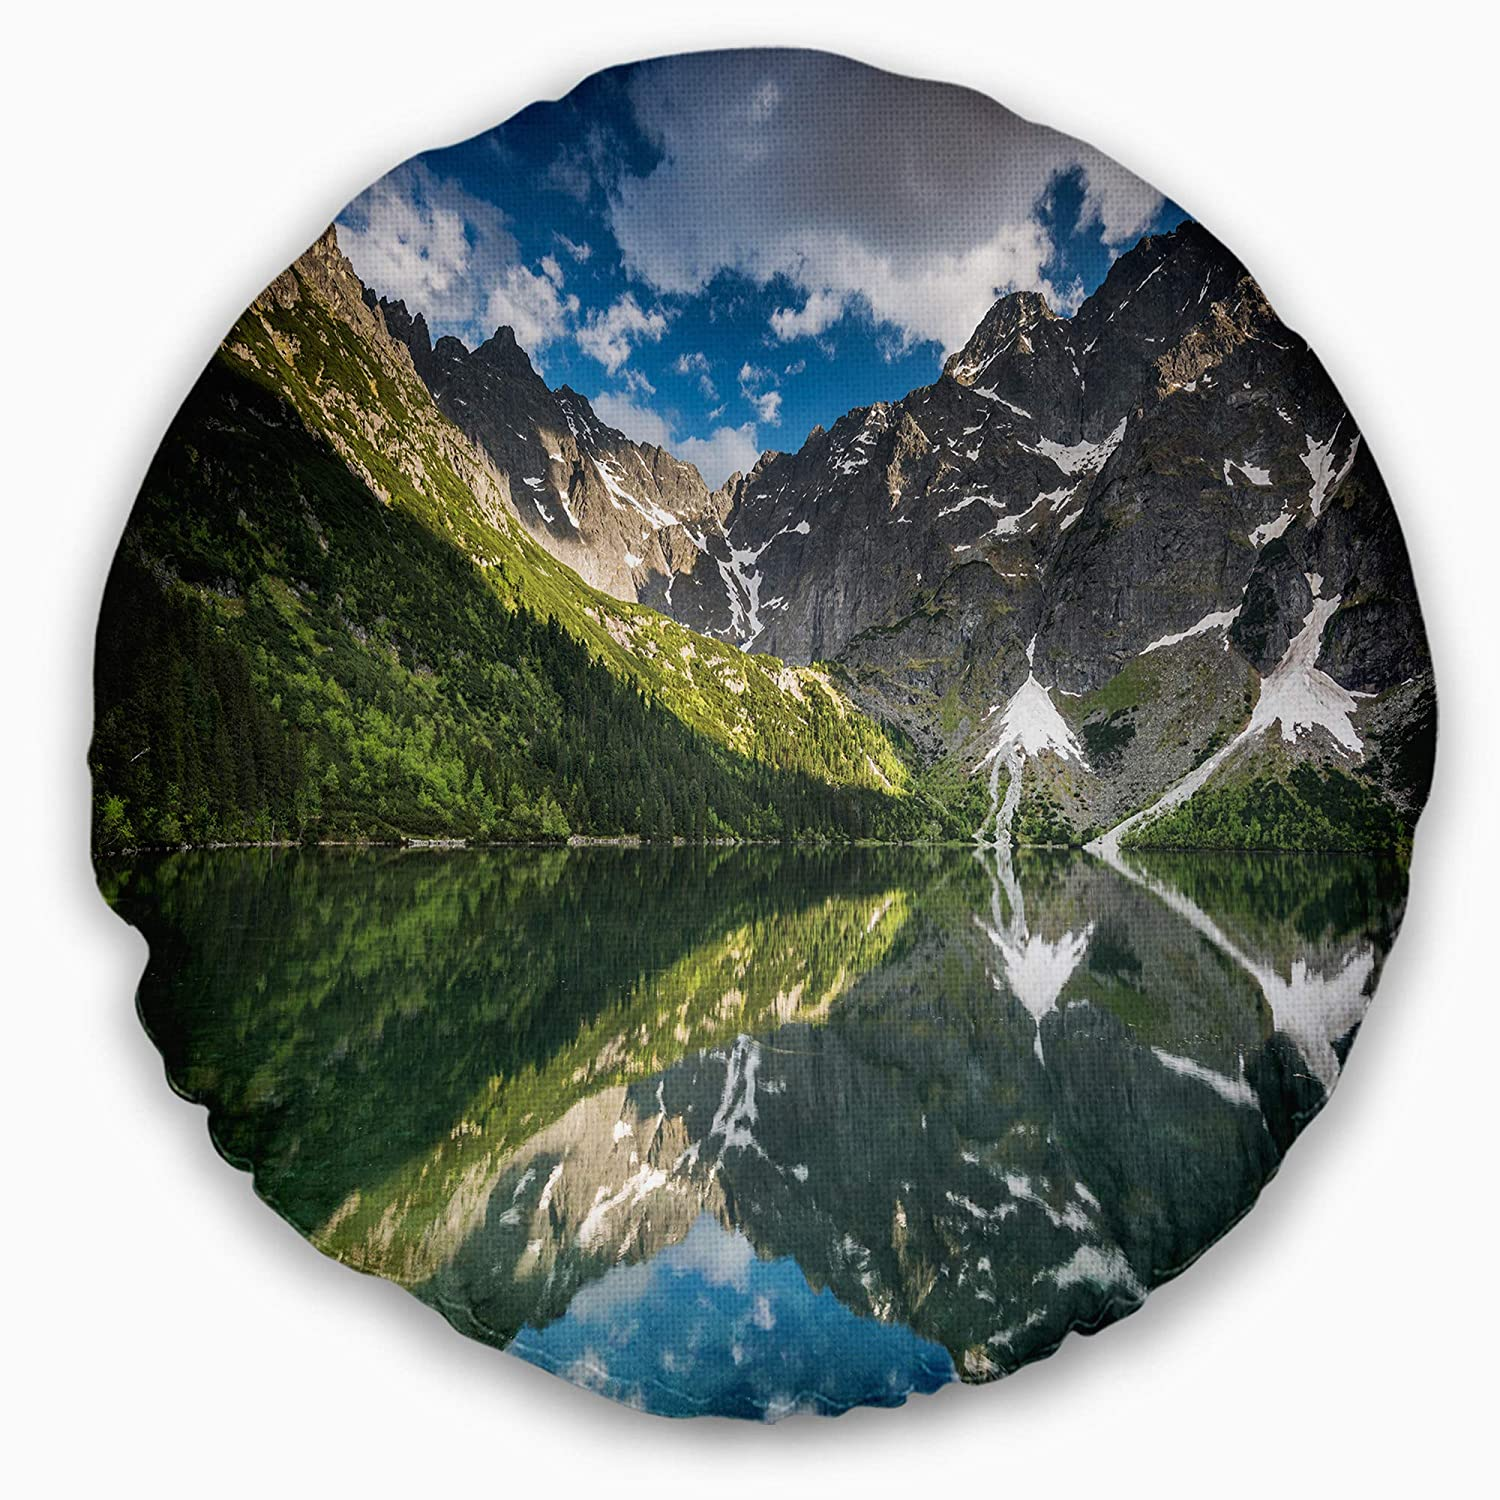 Designart CU9872-16-16-C Reflection of Mountain Peaks Landscape Printed Round Cushion Cover for Living Room Sofa Throw Pillow 16 Insert Side